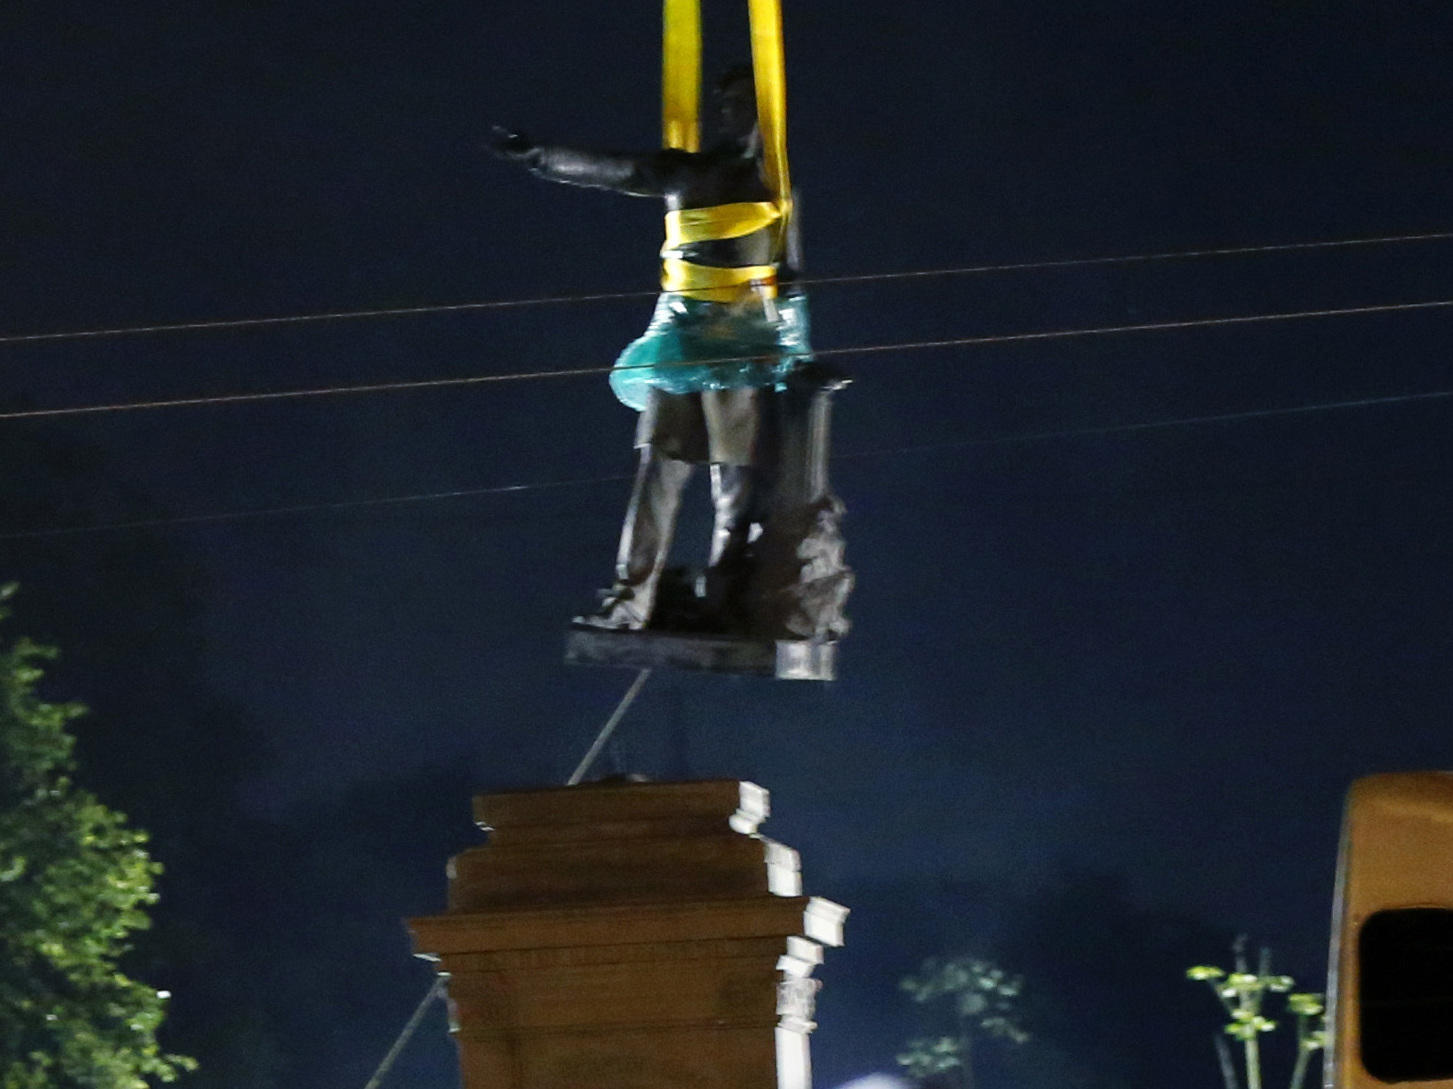 Activity near Jefferson Davis statue fuels speculation